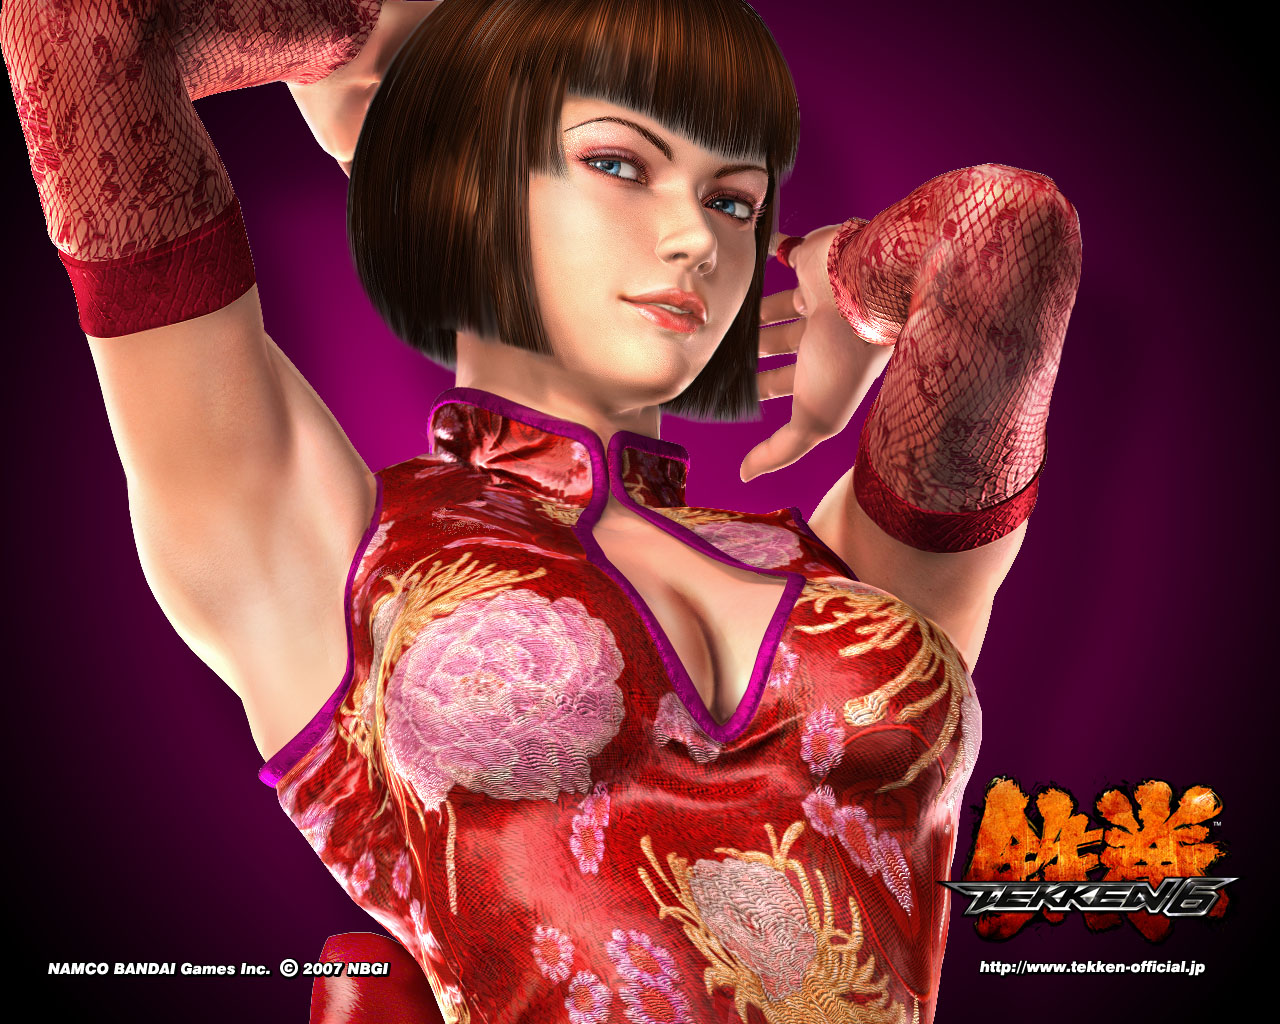 Anna Williams Tekken 6 554.74 Kb